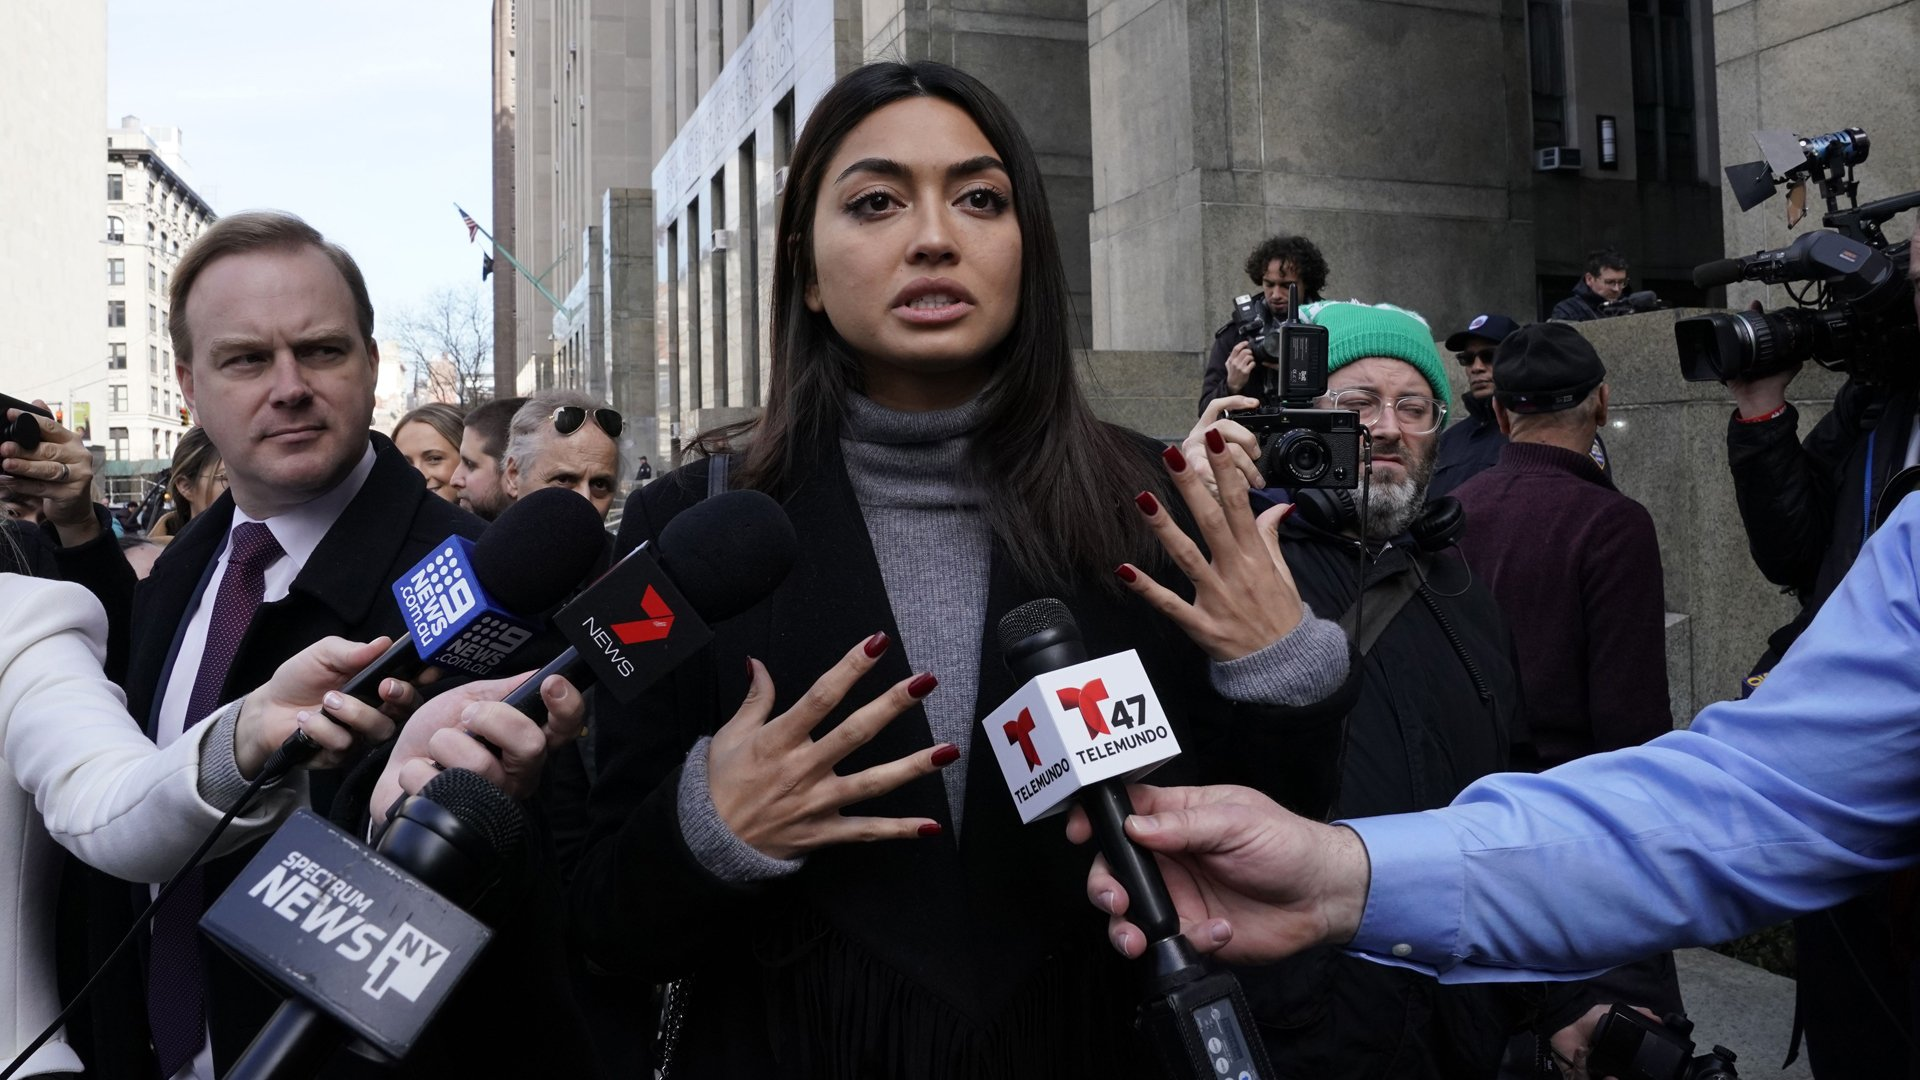 Ambra Battilana Gutierrez, an Italian-Filipina model who signed a million-dollar nondisclosure agreement with Harvey Weinstein, talks to press outside the Manhattan criminal courthouse after the producer was convicted on Feb. 24, 2020. (Credit: Timothy A. Clary / AFP / Getty Images)